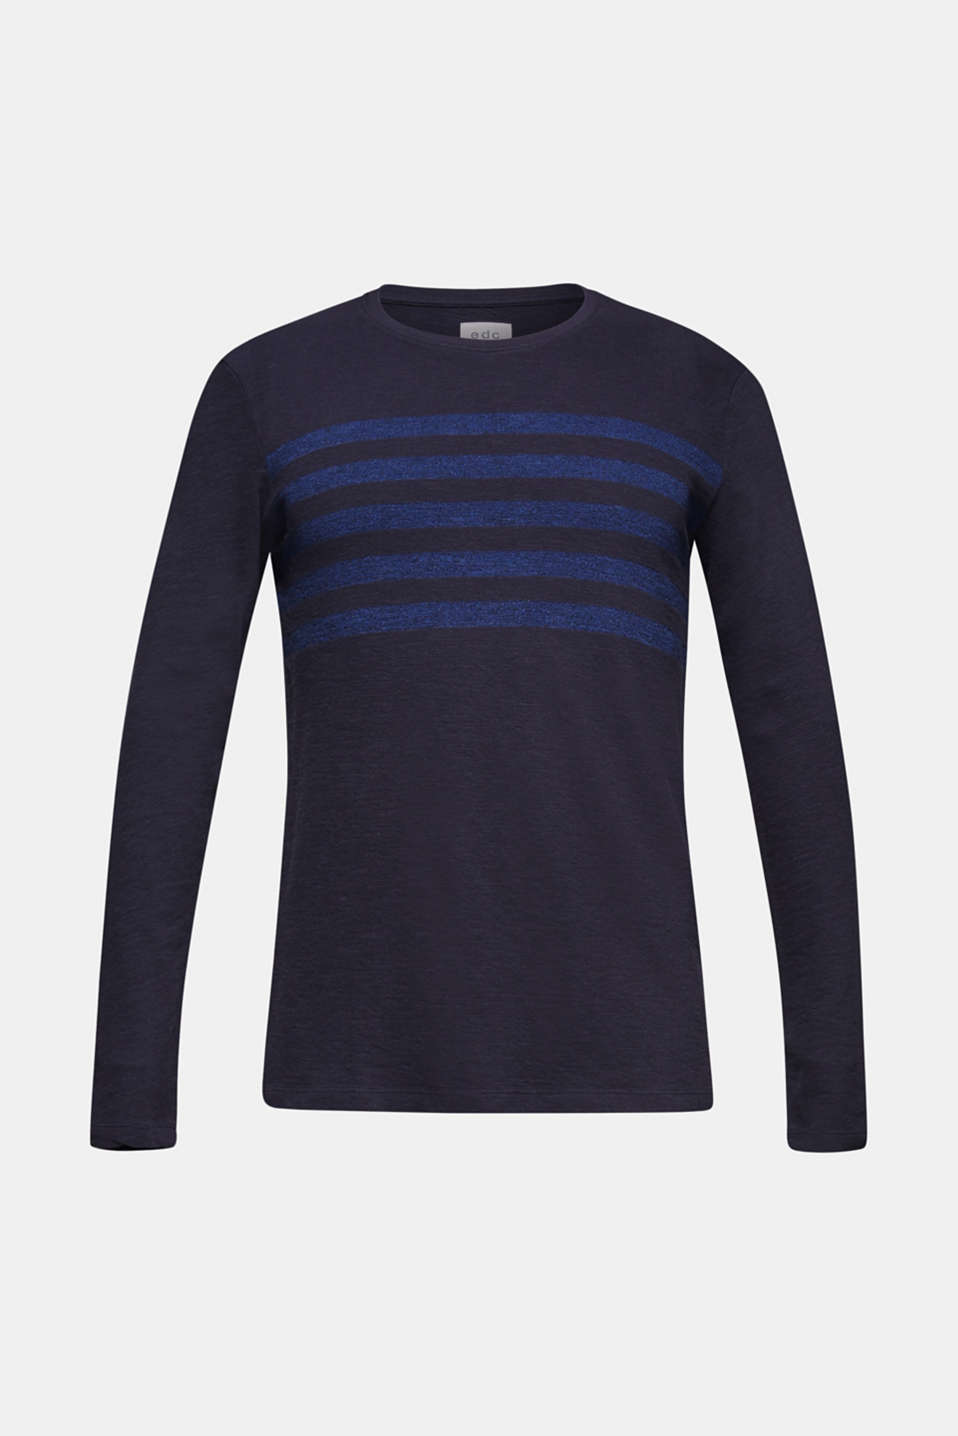 Jersey long sleeve top with stripes, NAVY, detail image number 5